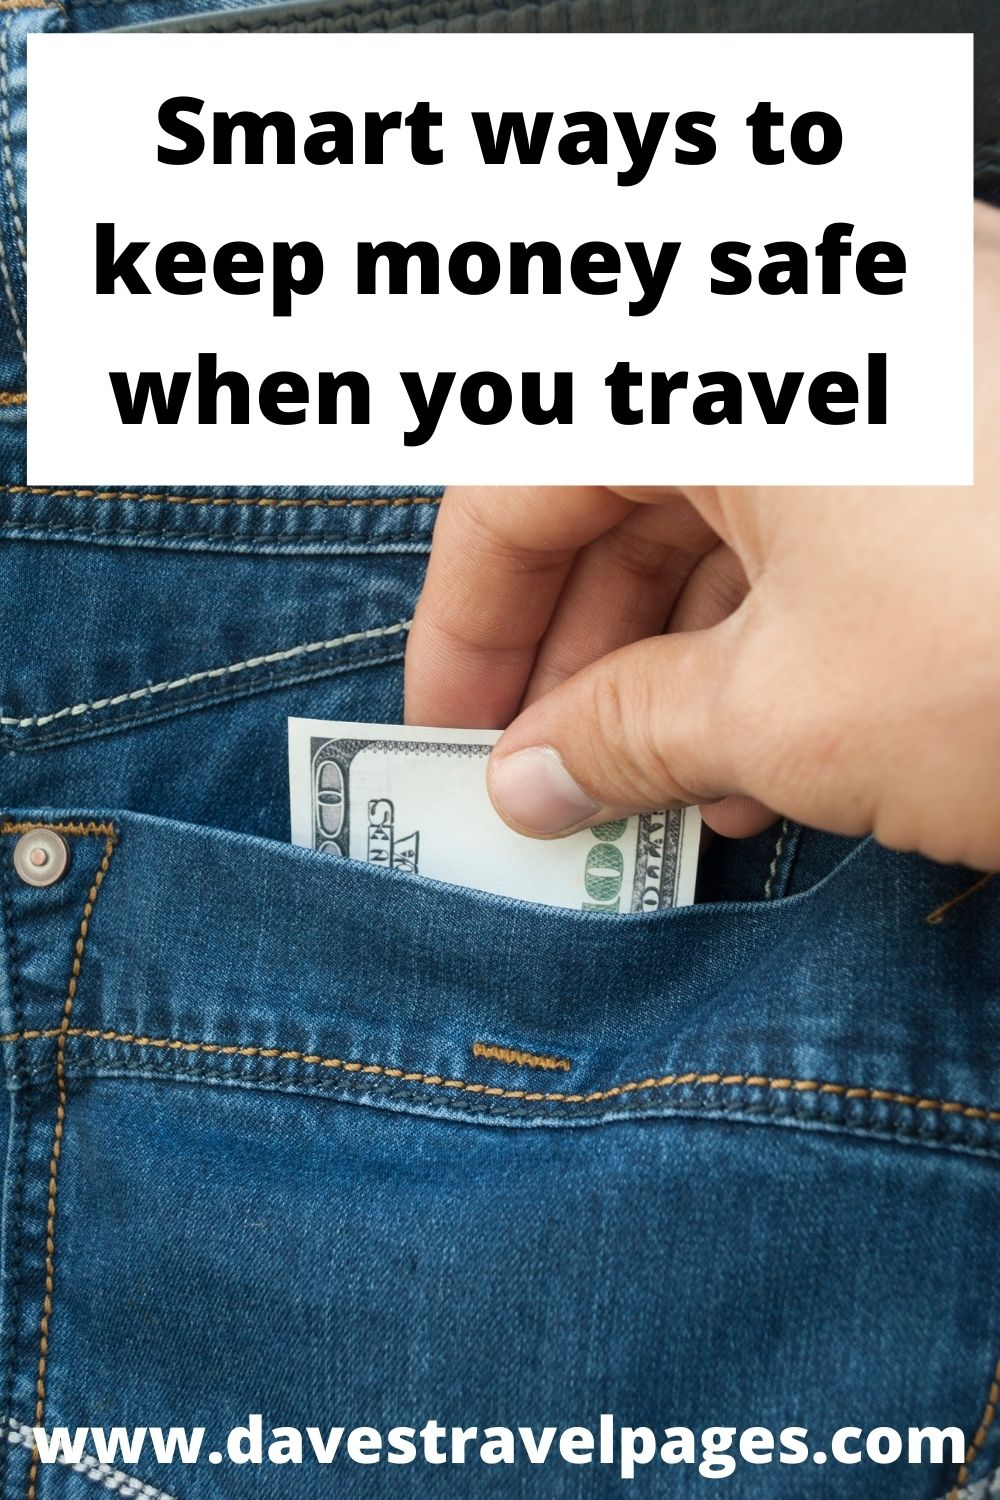 Smart ways to keep money safe when you travel